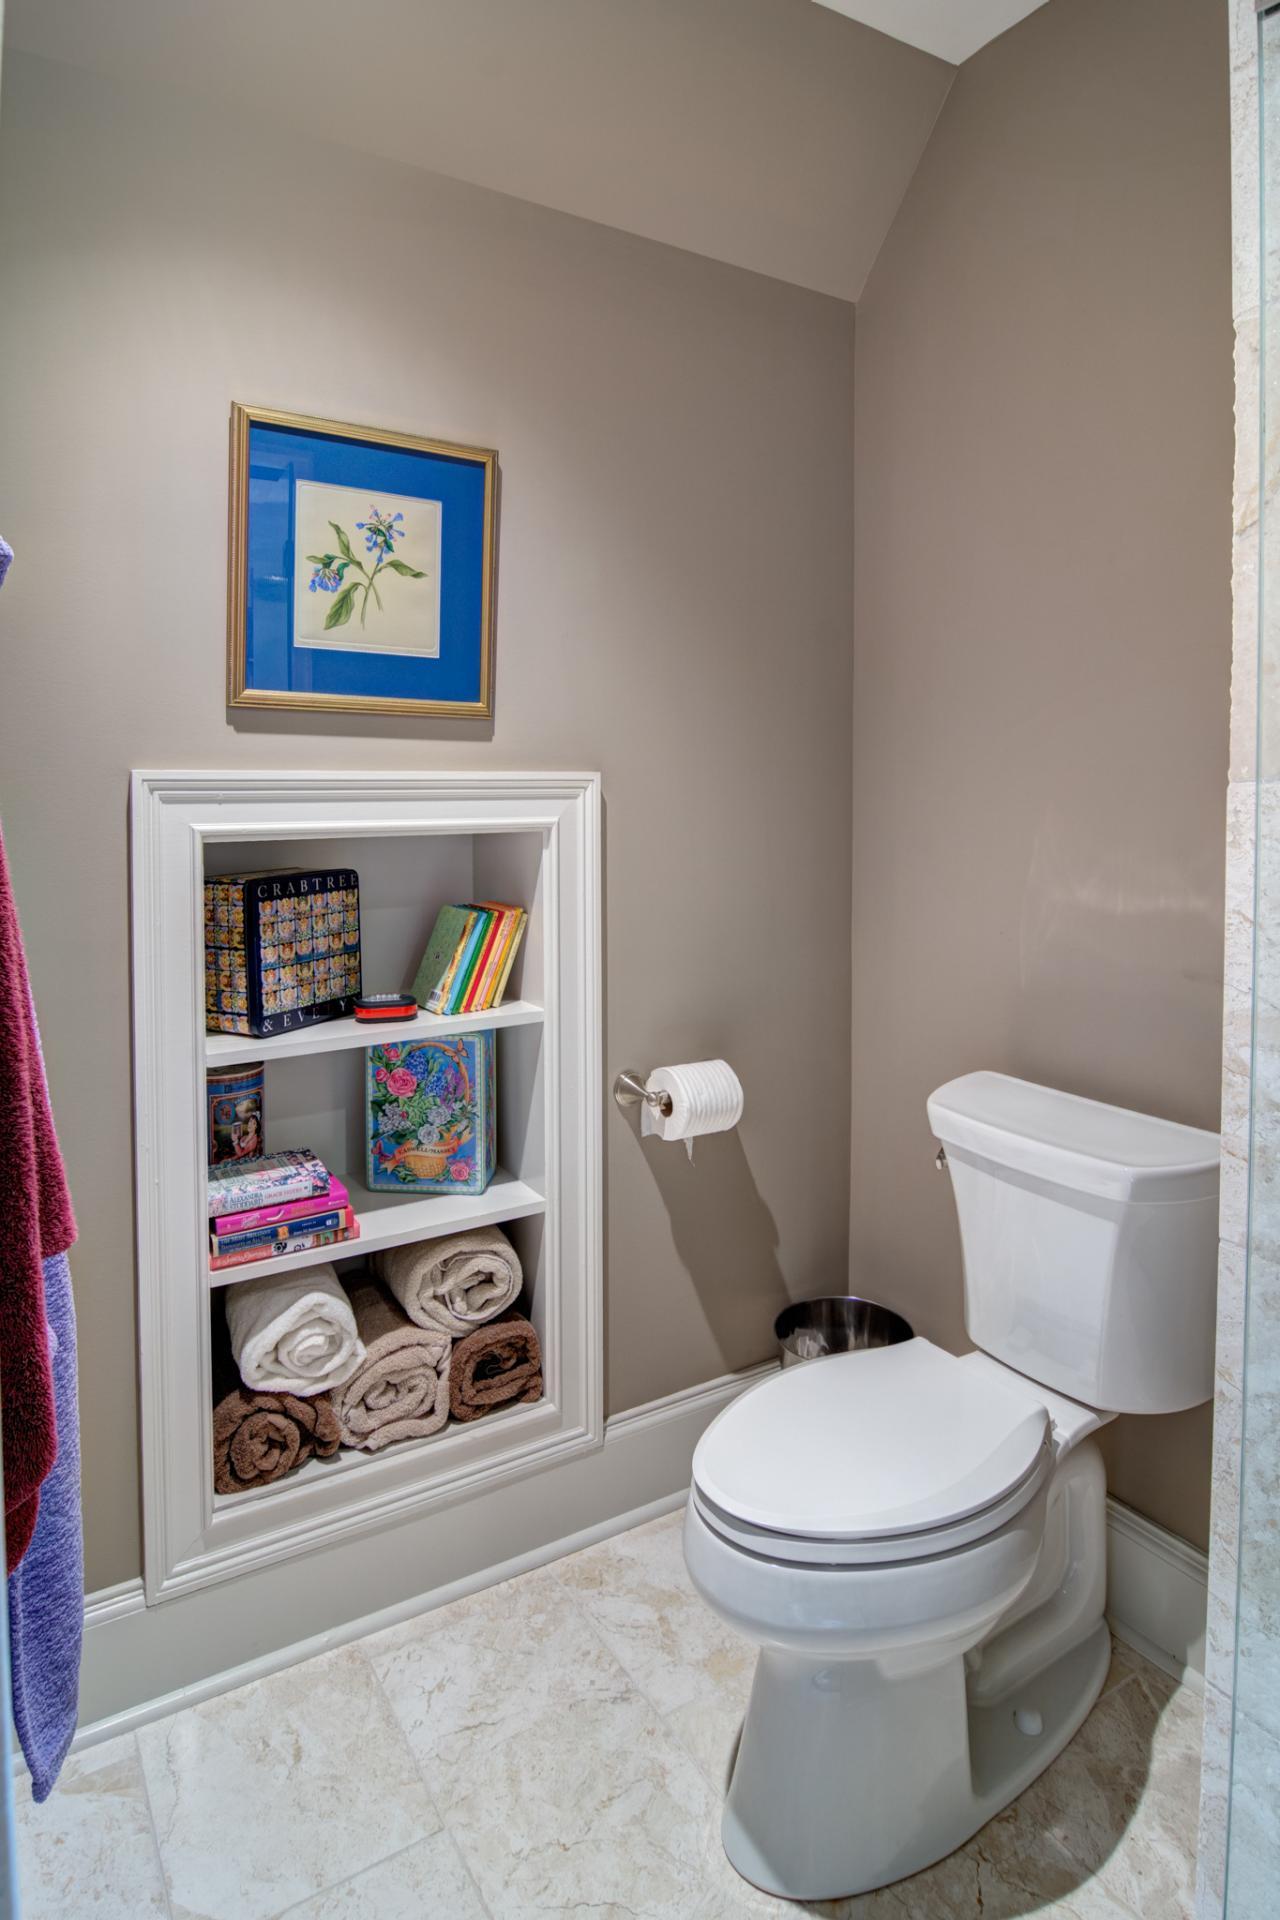 Built In Storage. Bathroom Storage Ideas